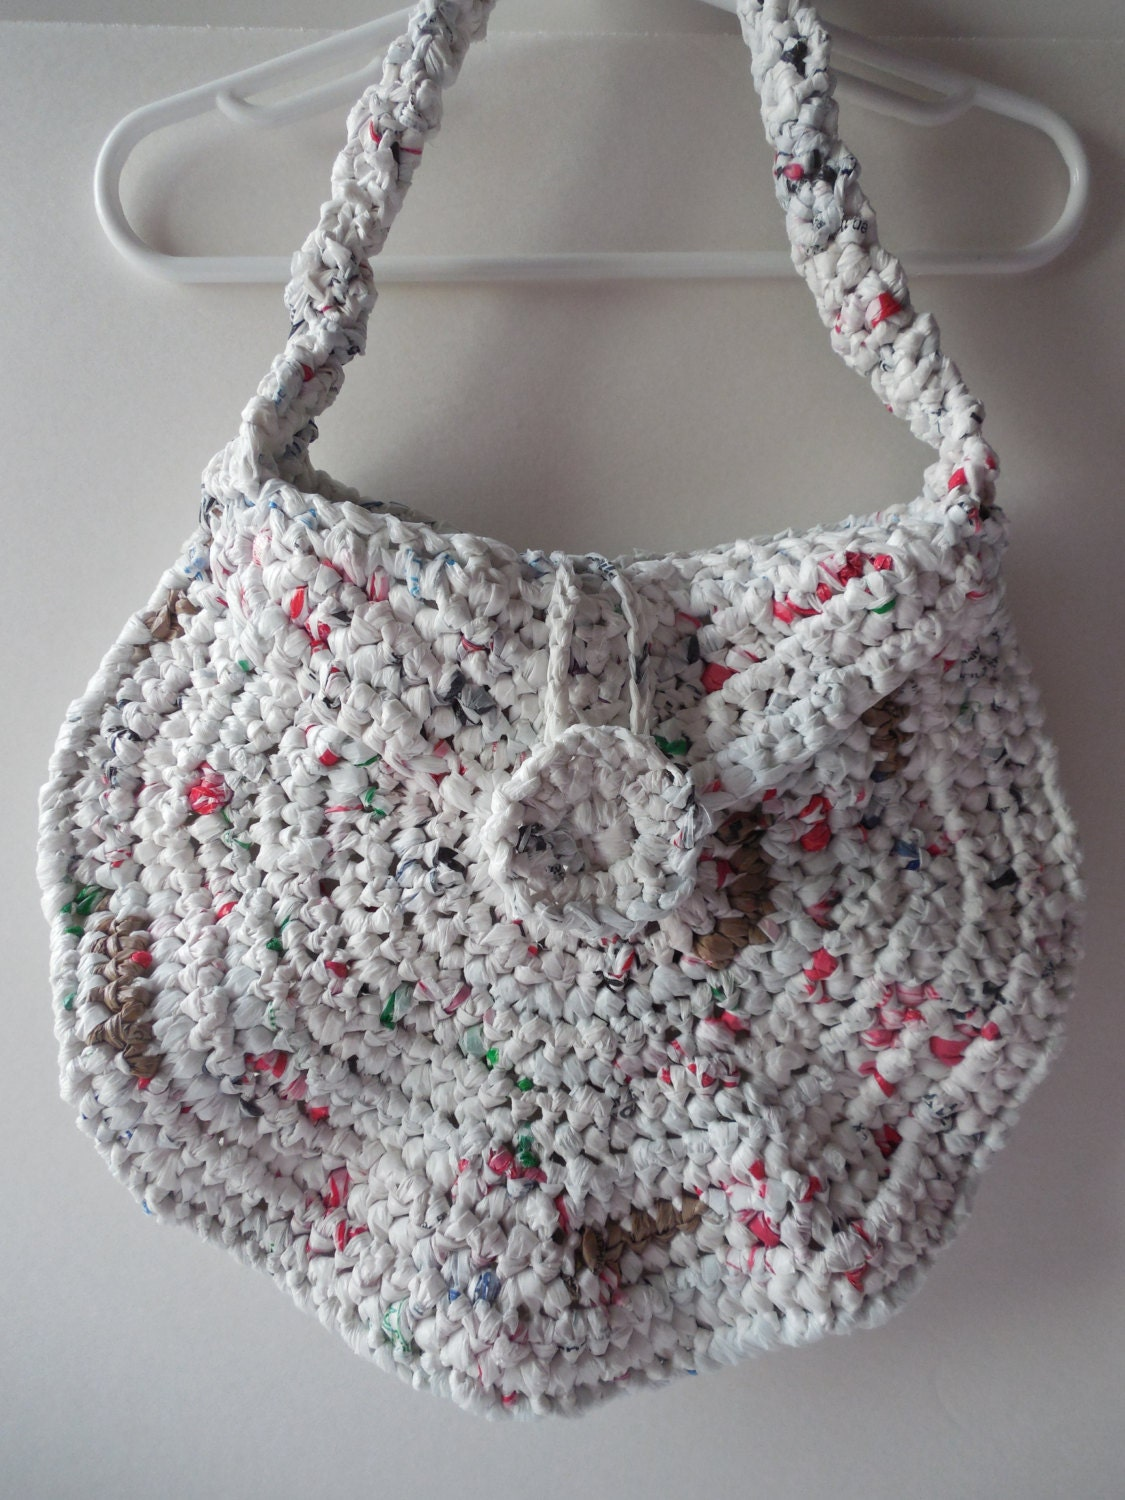 Handmade Crochet Handbags : Crochet Purse Handmade Crochet Shoulder by ShelleysCrochetOle